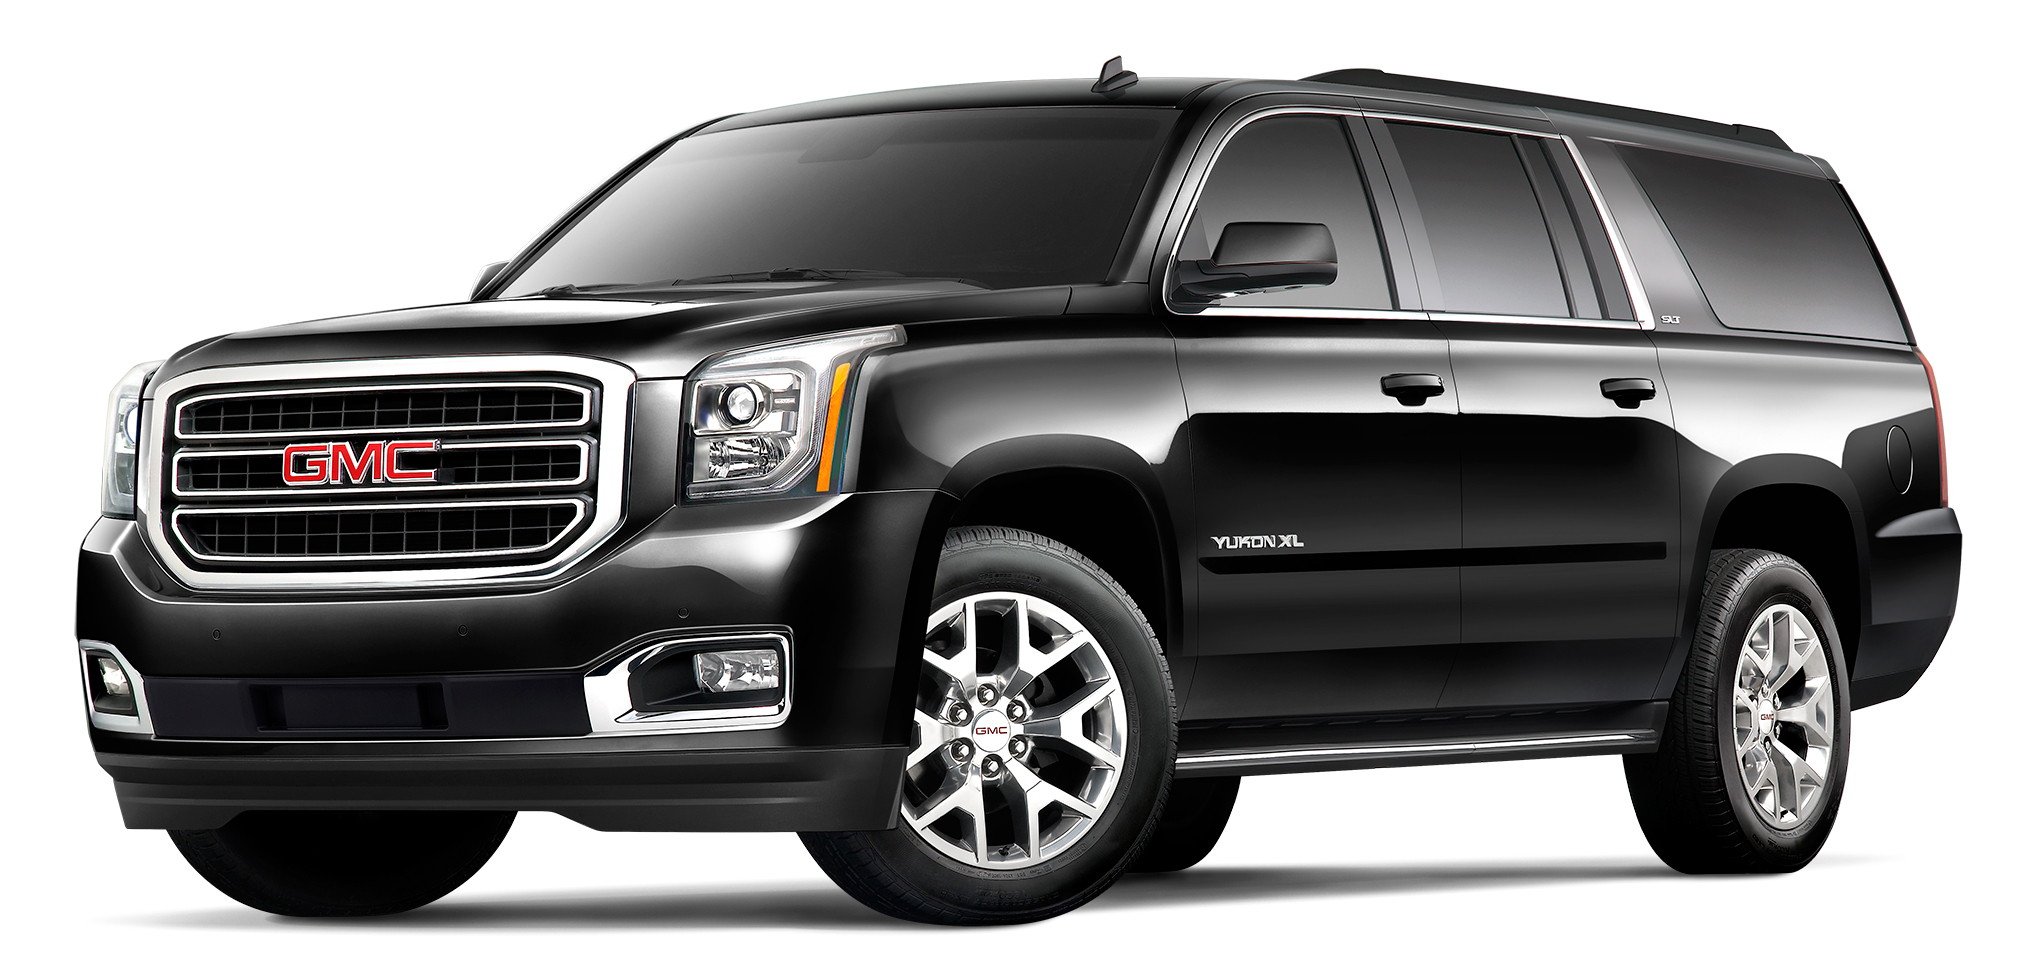 GMC Yukon XL Black